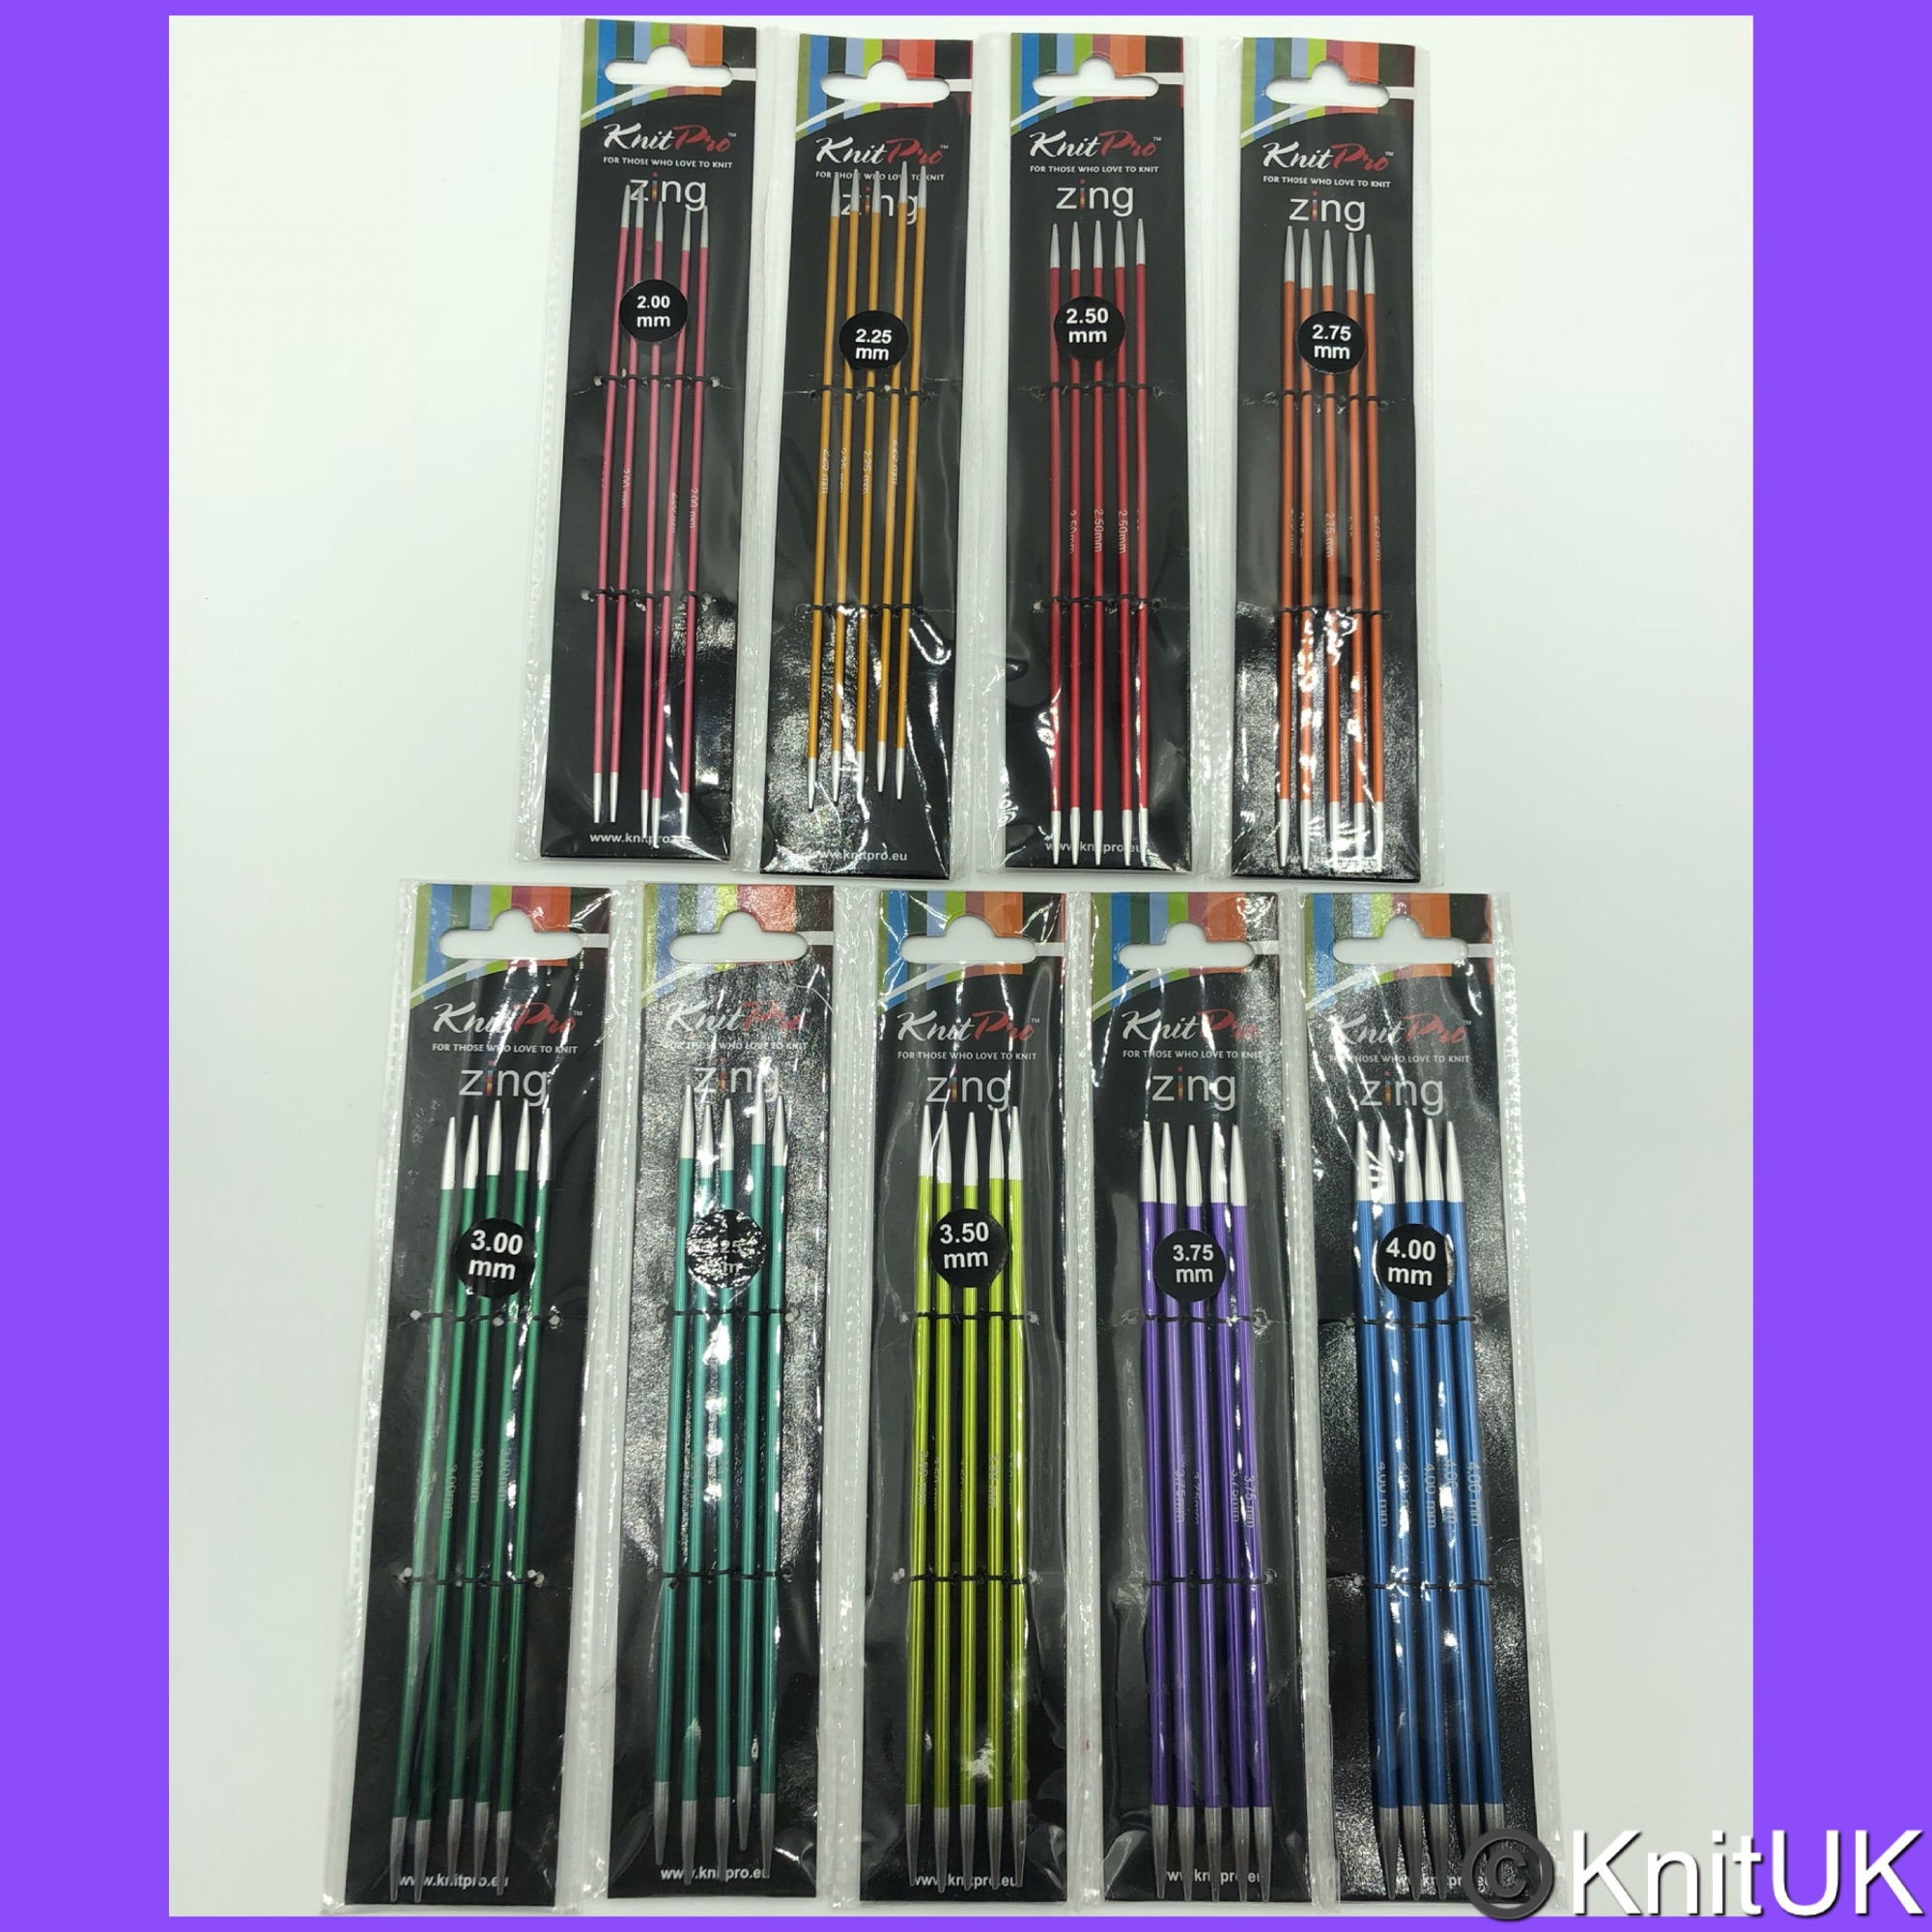 knitpro zing 15cm double point knitting needles set 5 Sizes packaging pictu